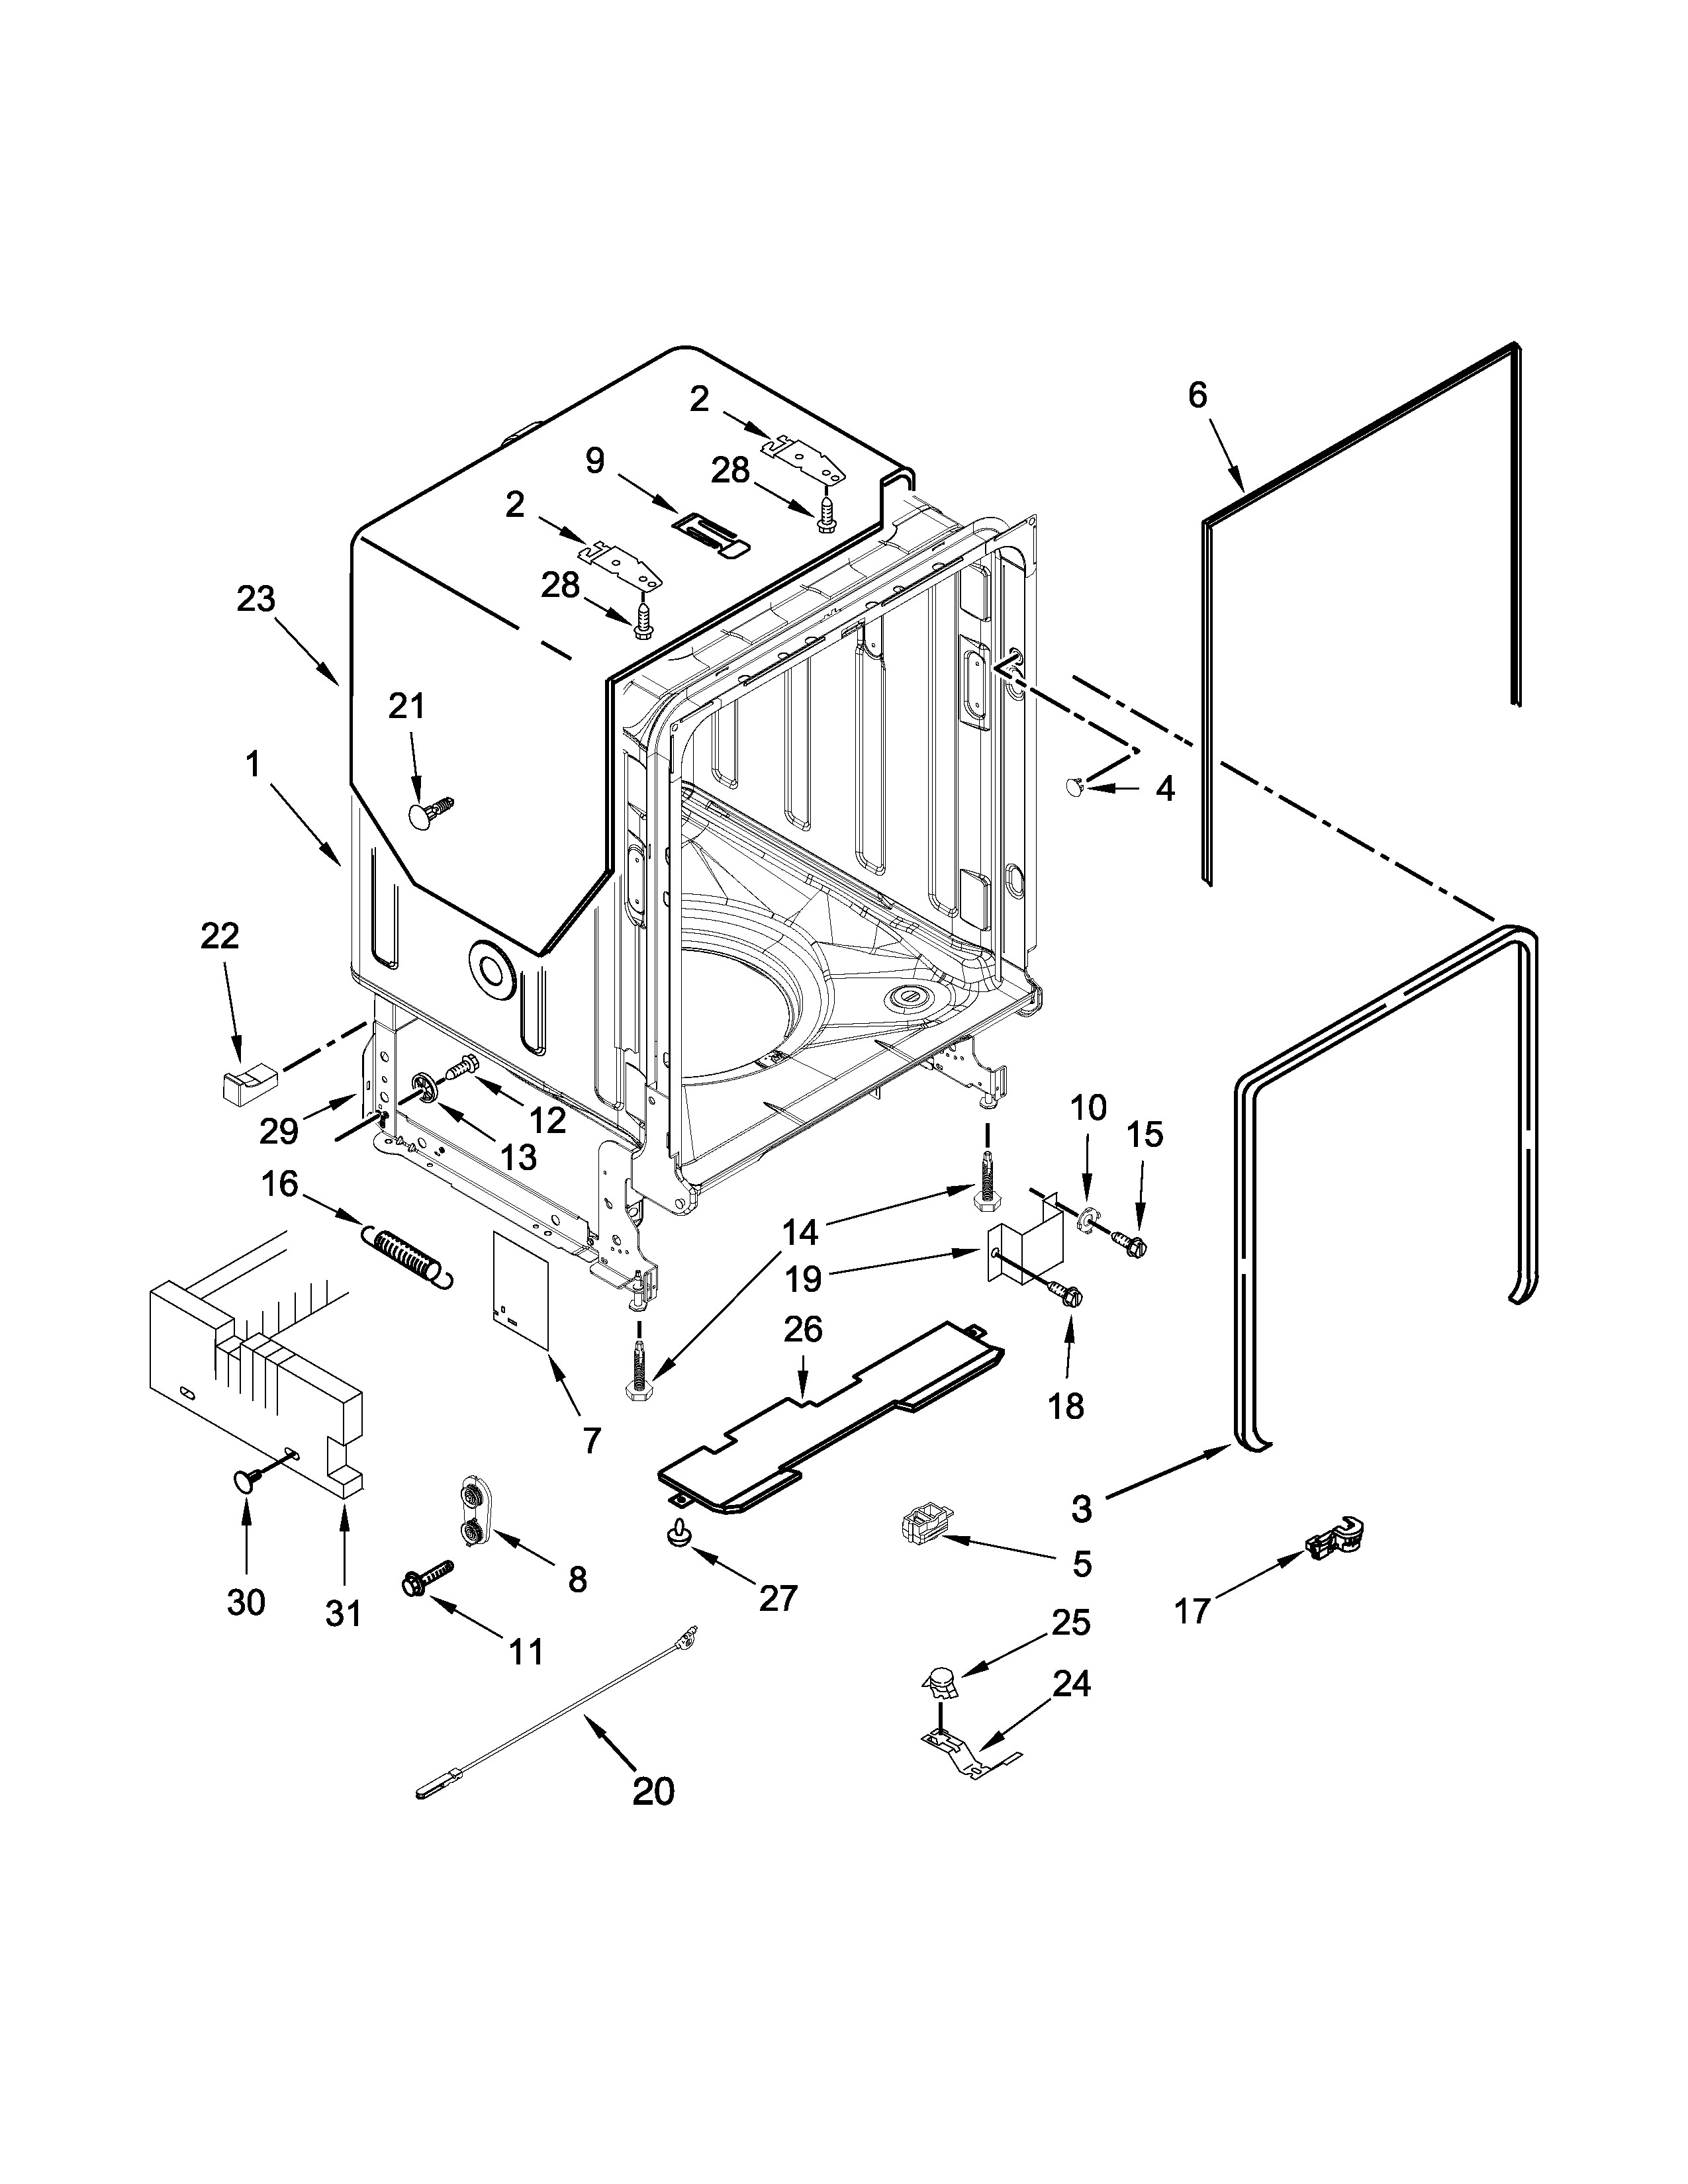 Double Hung Window Parts Diagram Maytag Model Mdb7949sdm0 Dishwasher Genuine Parts Of Double Hung Window Parts Diagram